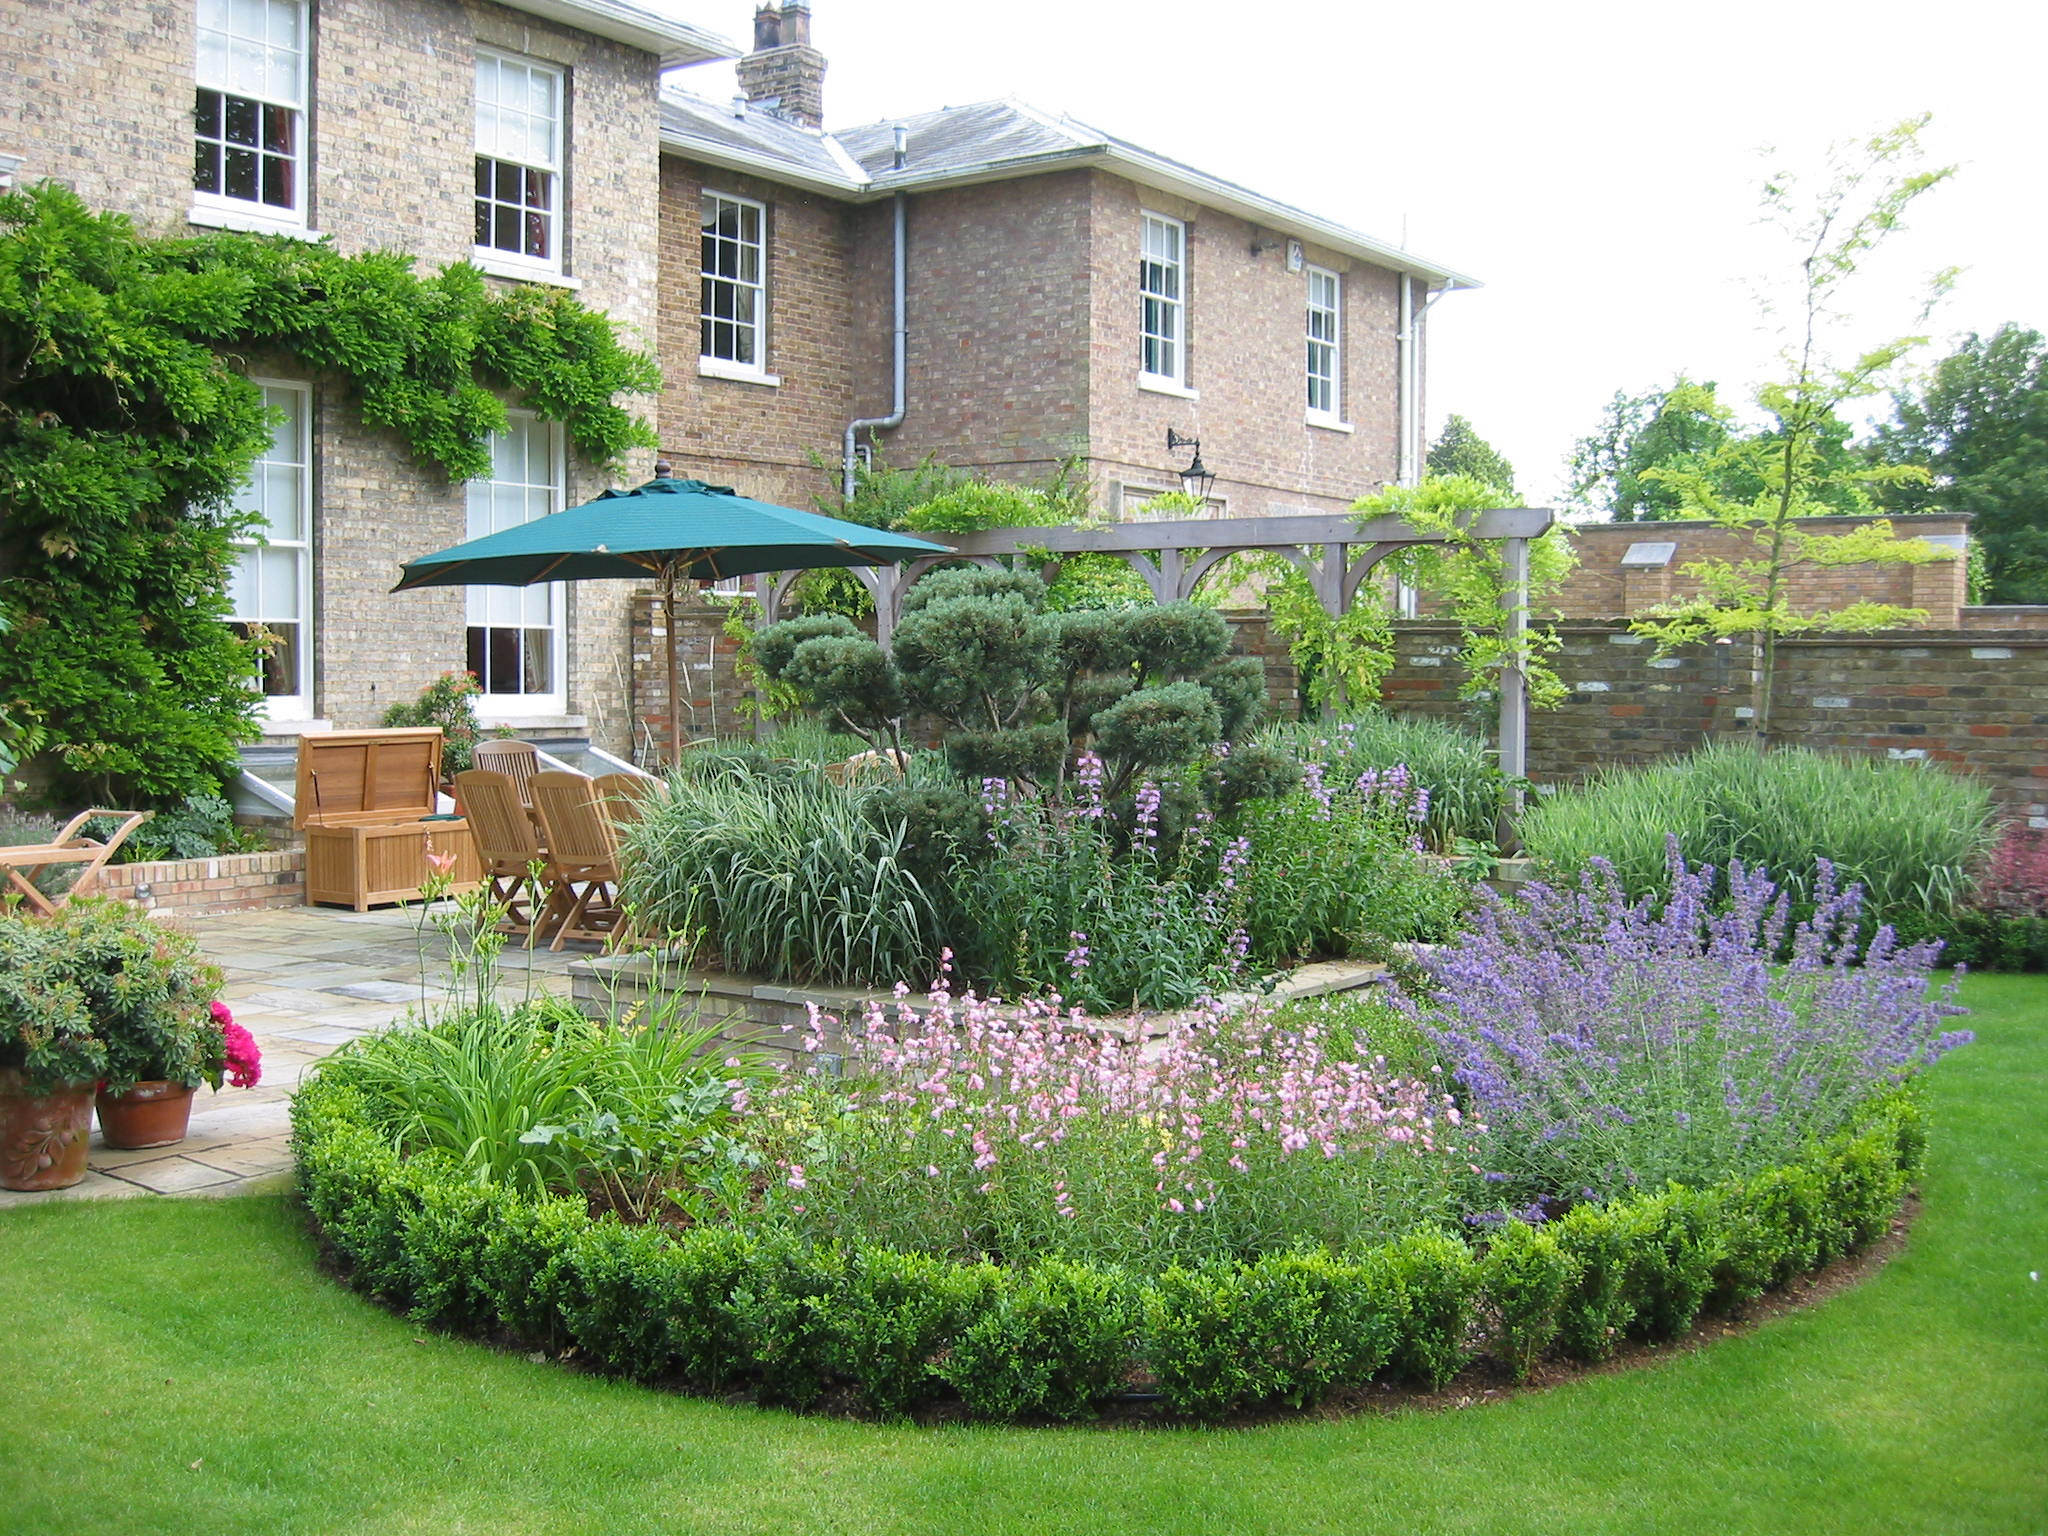 Best landscape designs to have a beautiful garden cool for The best garden design